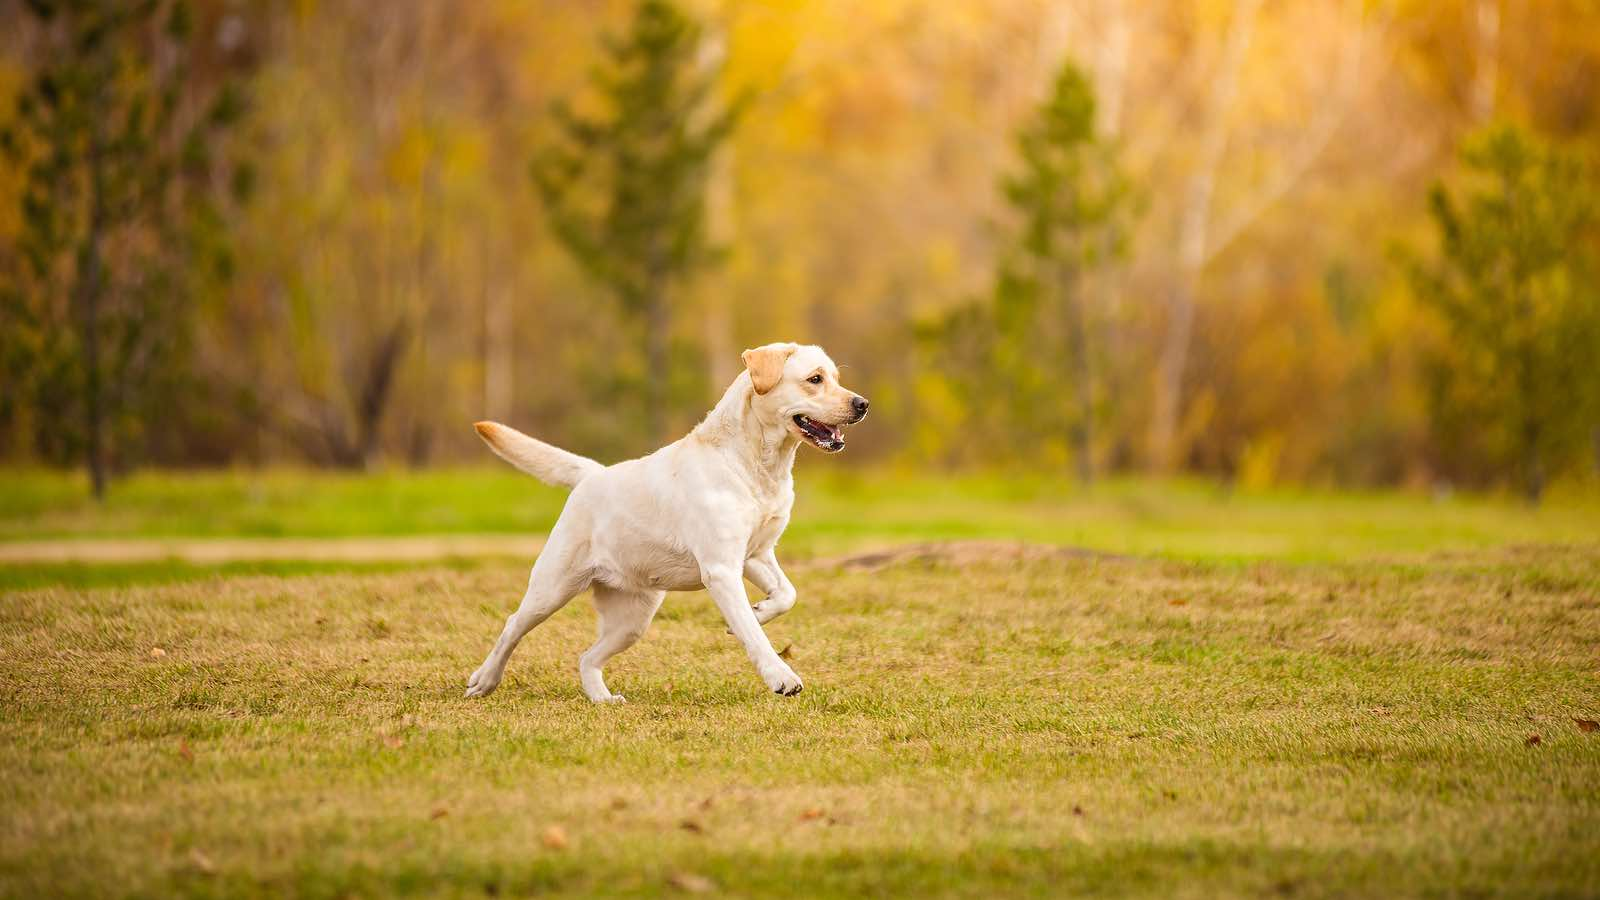 Managing Disorders of the Canine Front Limb : Enhance the outcomes of your canine patients who present with forelimb lameness